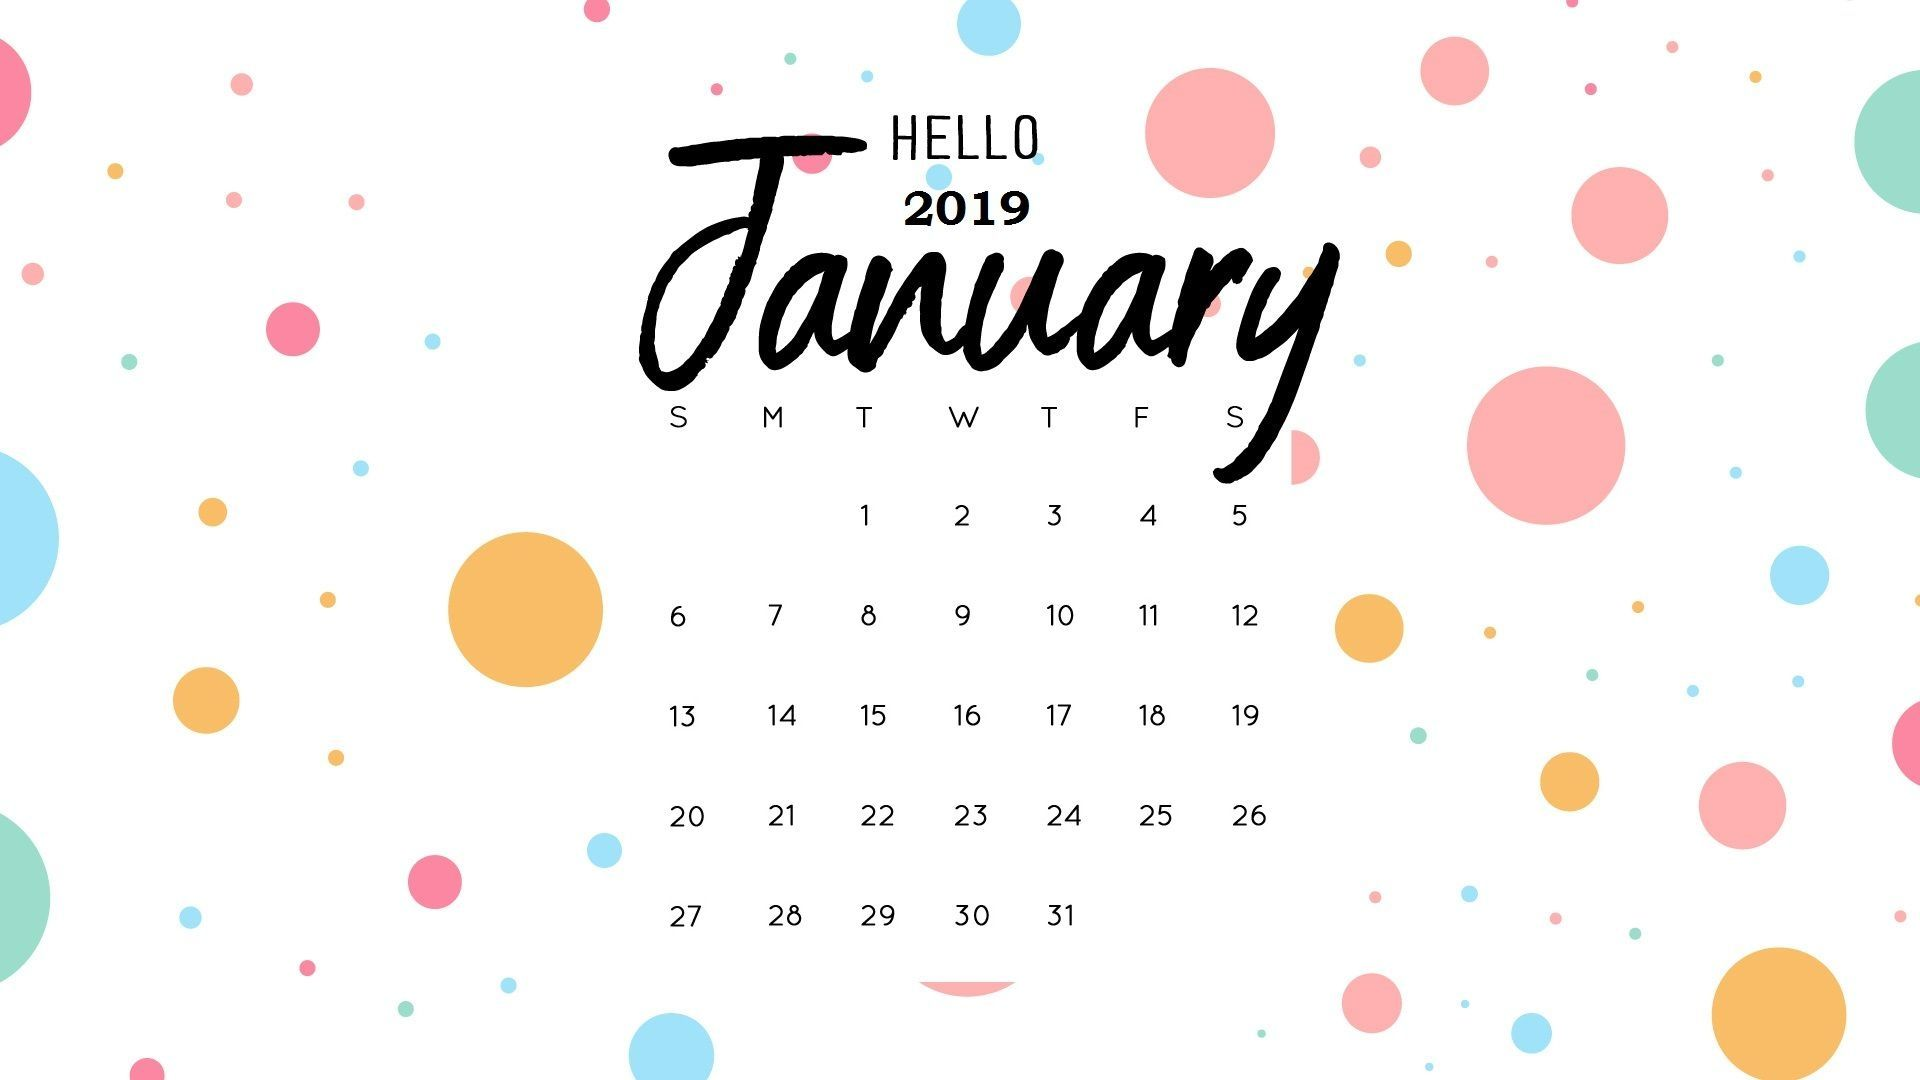 hello january 2019 calendar wallpaper monthly calendar